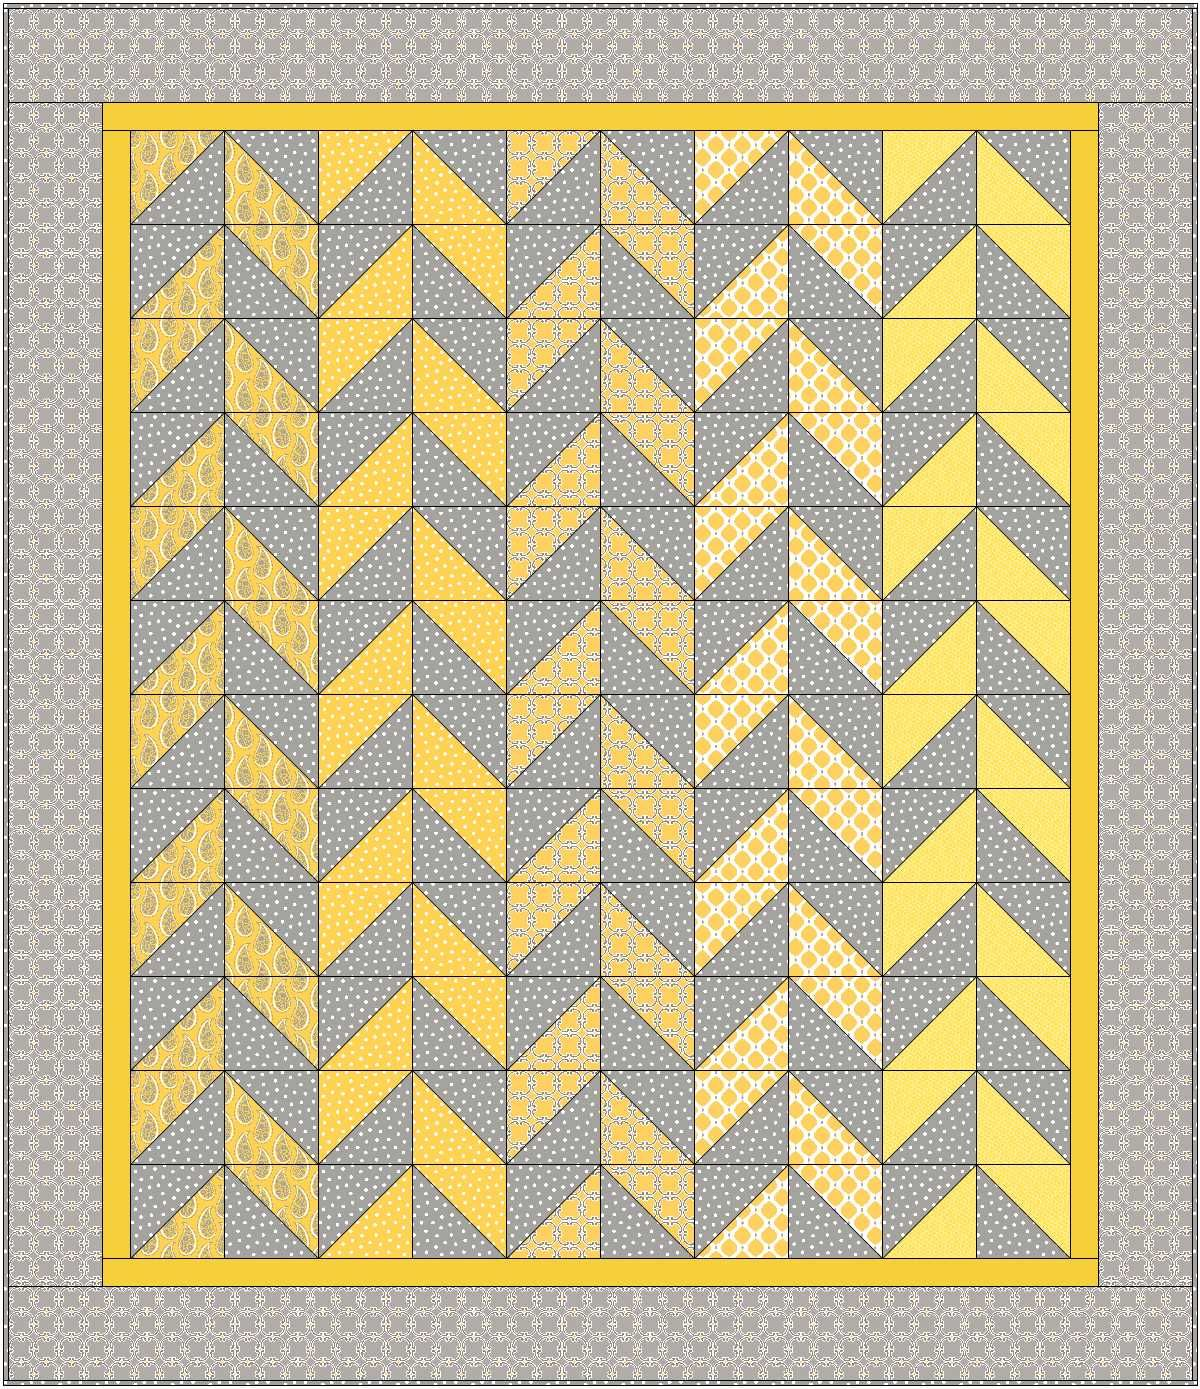 Herringbone - A Free Quilt Pattern for You! | Sewing Tutorials ... : free patterns for quilting projects - Adamdwight.com